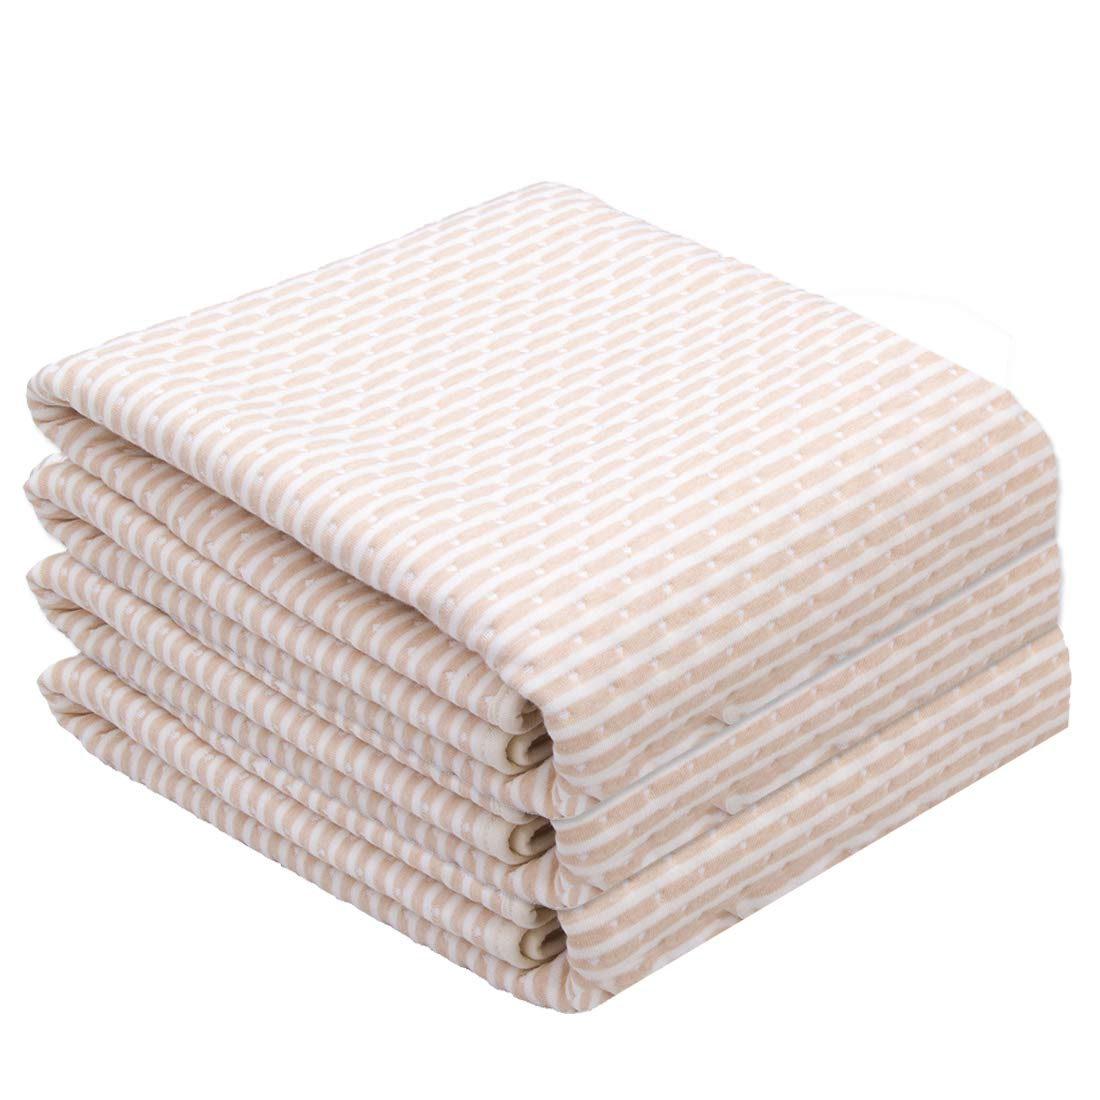 3 Pack Waterproof Bed Pad Incontinence Mattress Protector 100% Cotton Baby Changing Mats for Children Adults and Pets(3pcs Brown & White, 19.7 x 27.6 Inch)